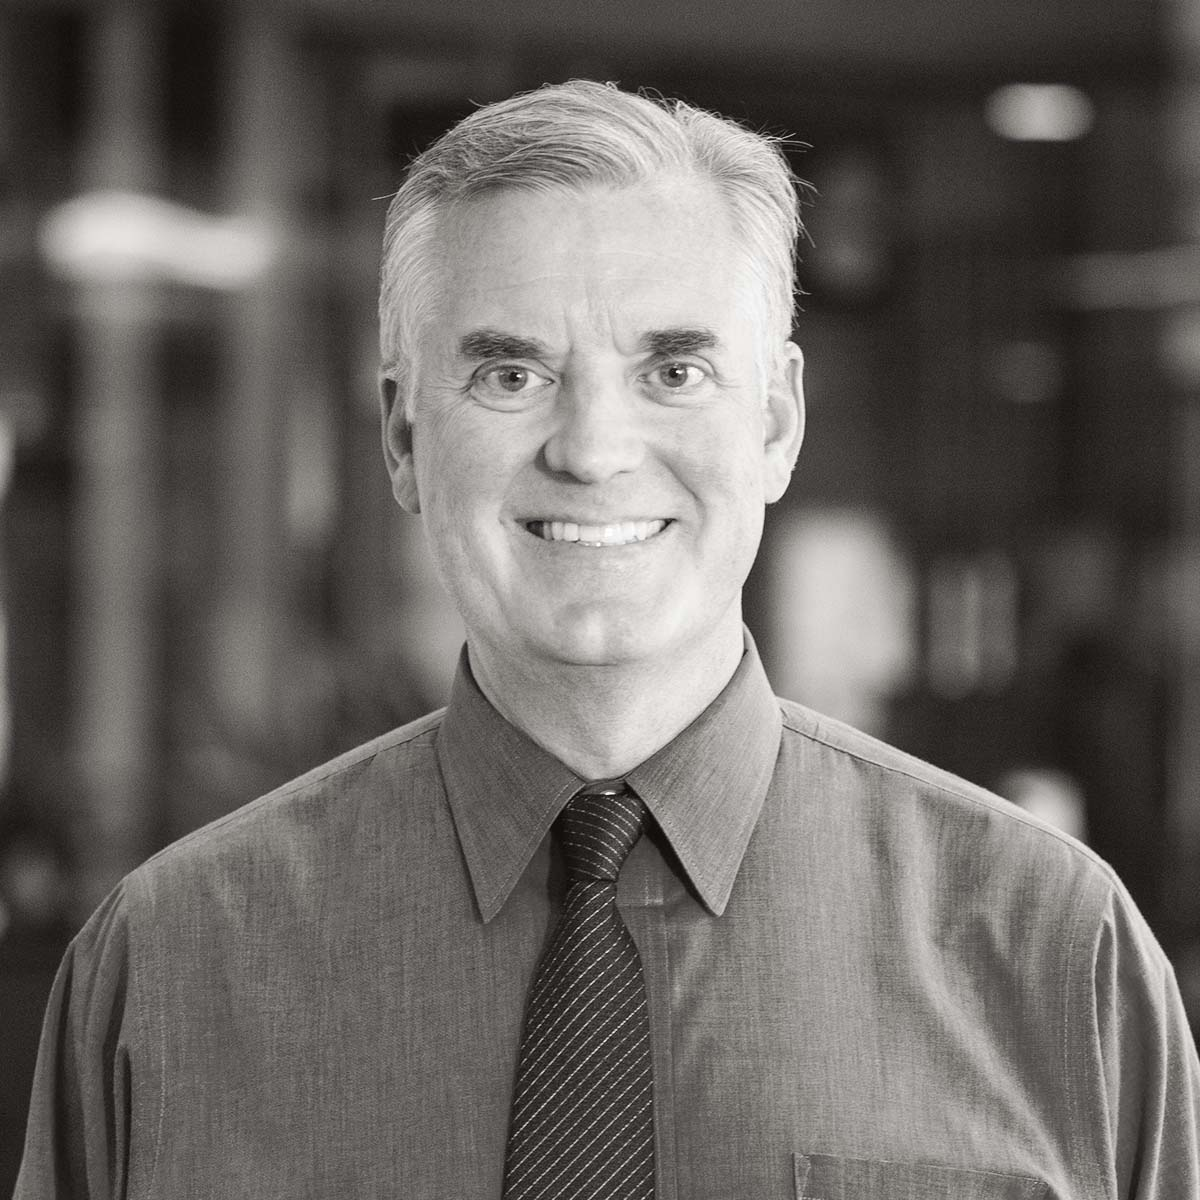 Photo of Peter M. Corroon